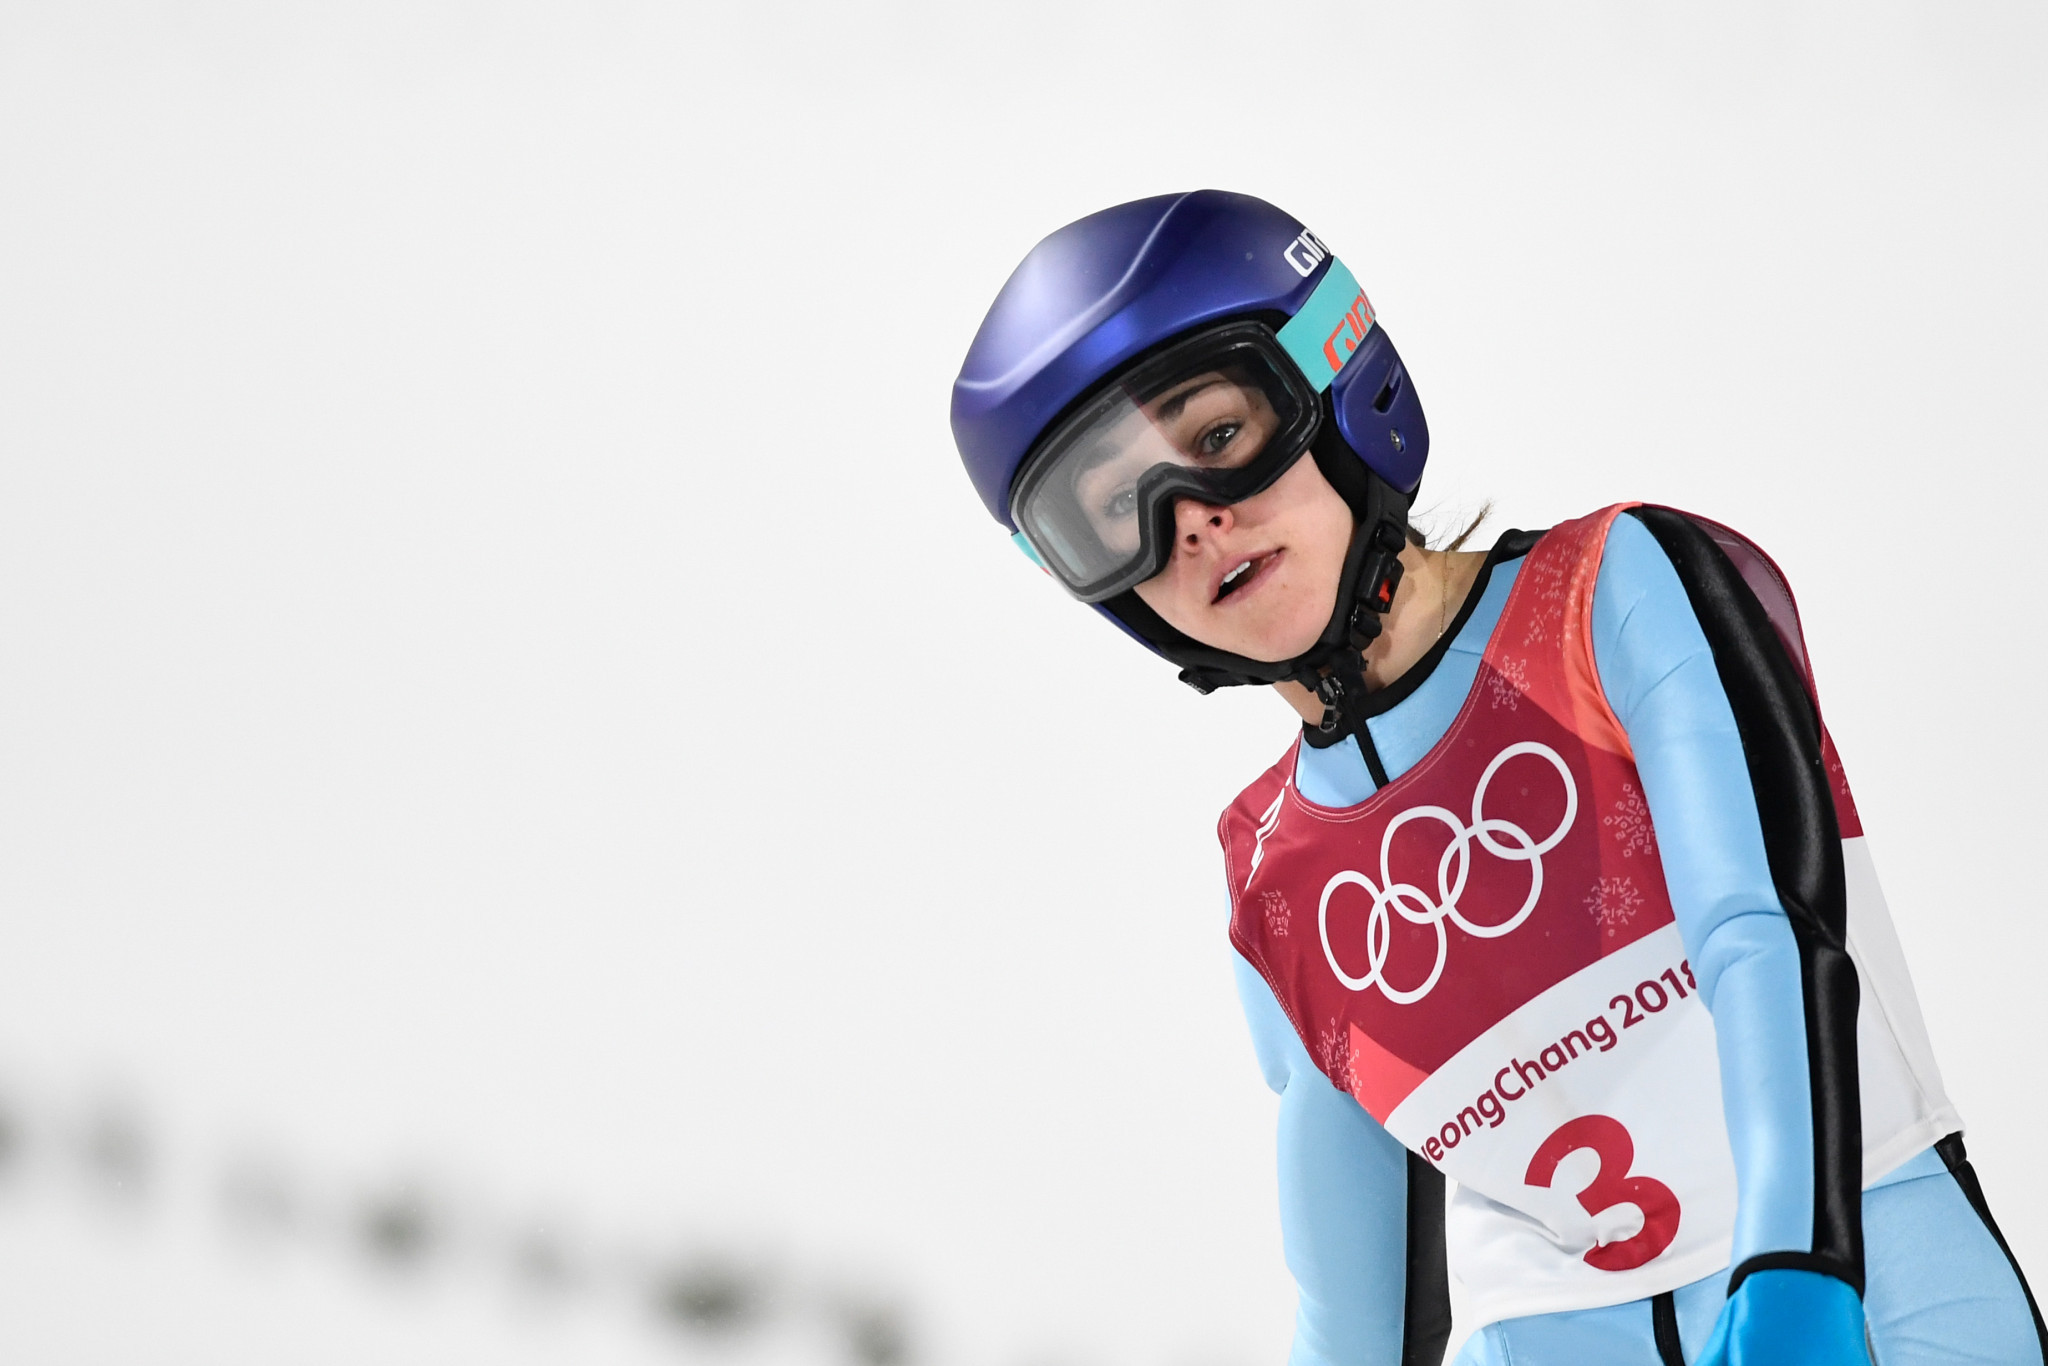 Hendrickson took a break from competitive ski jumping after the 2018 Winter Olympic Games in Pyeongchang ©Getty Images